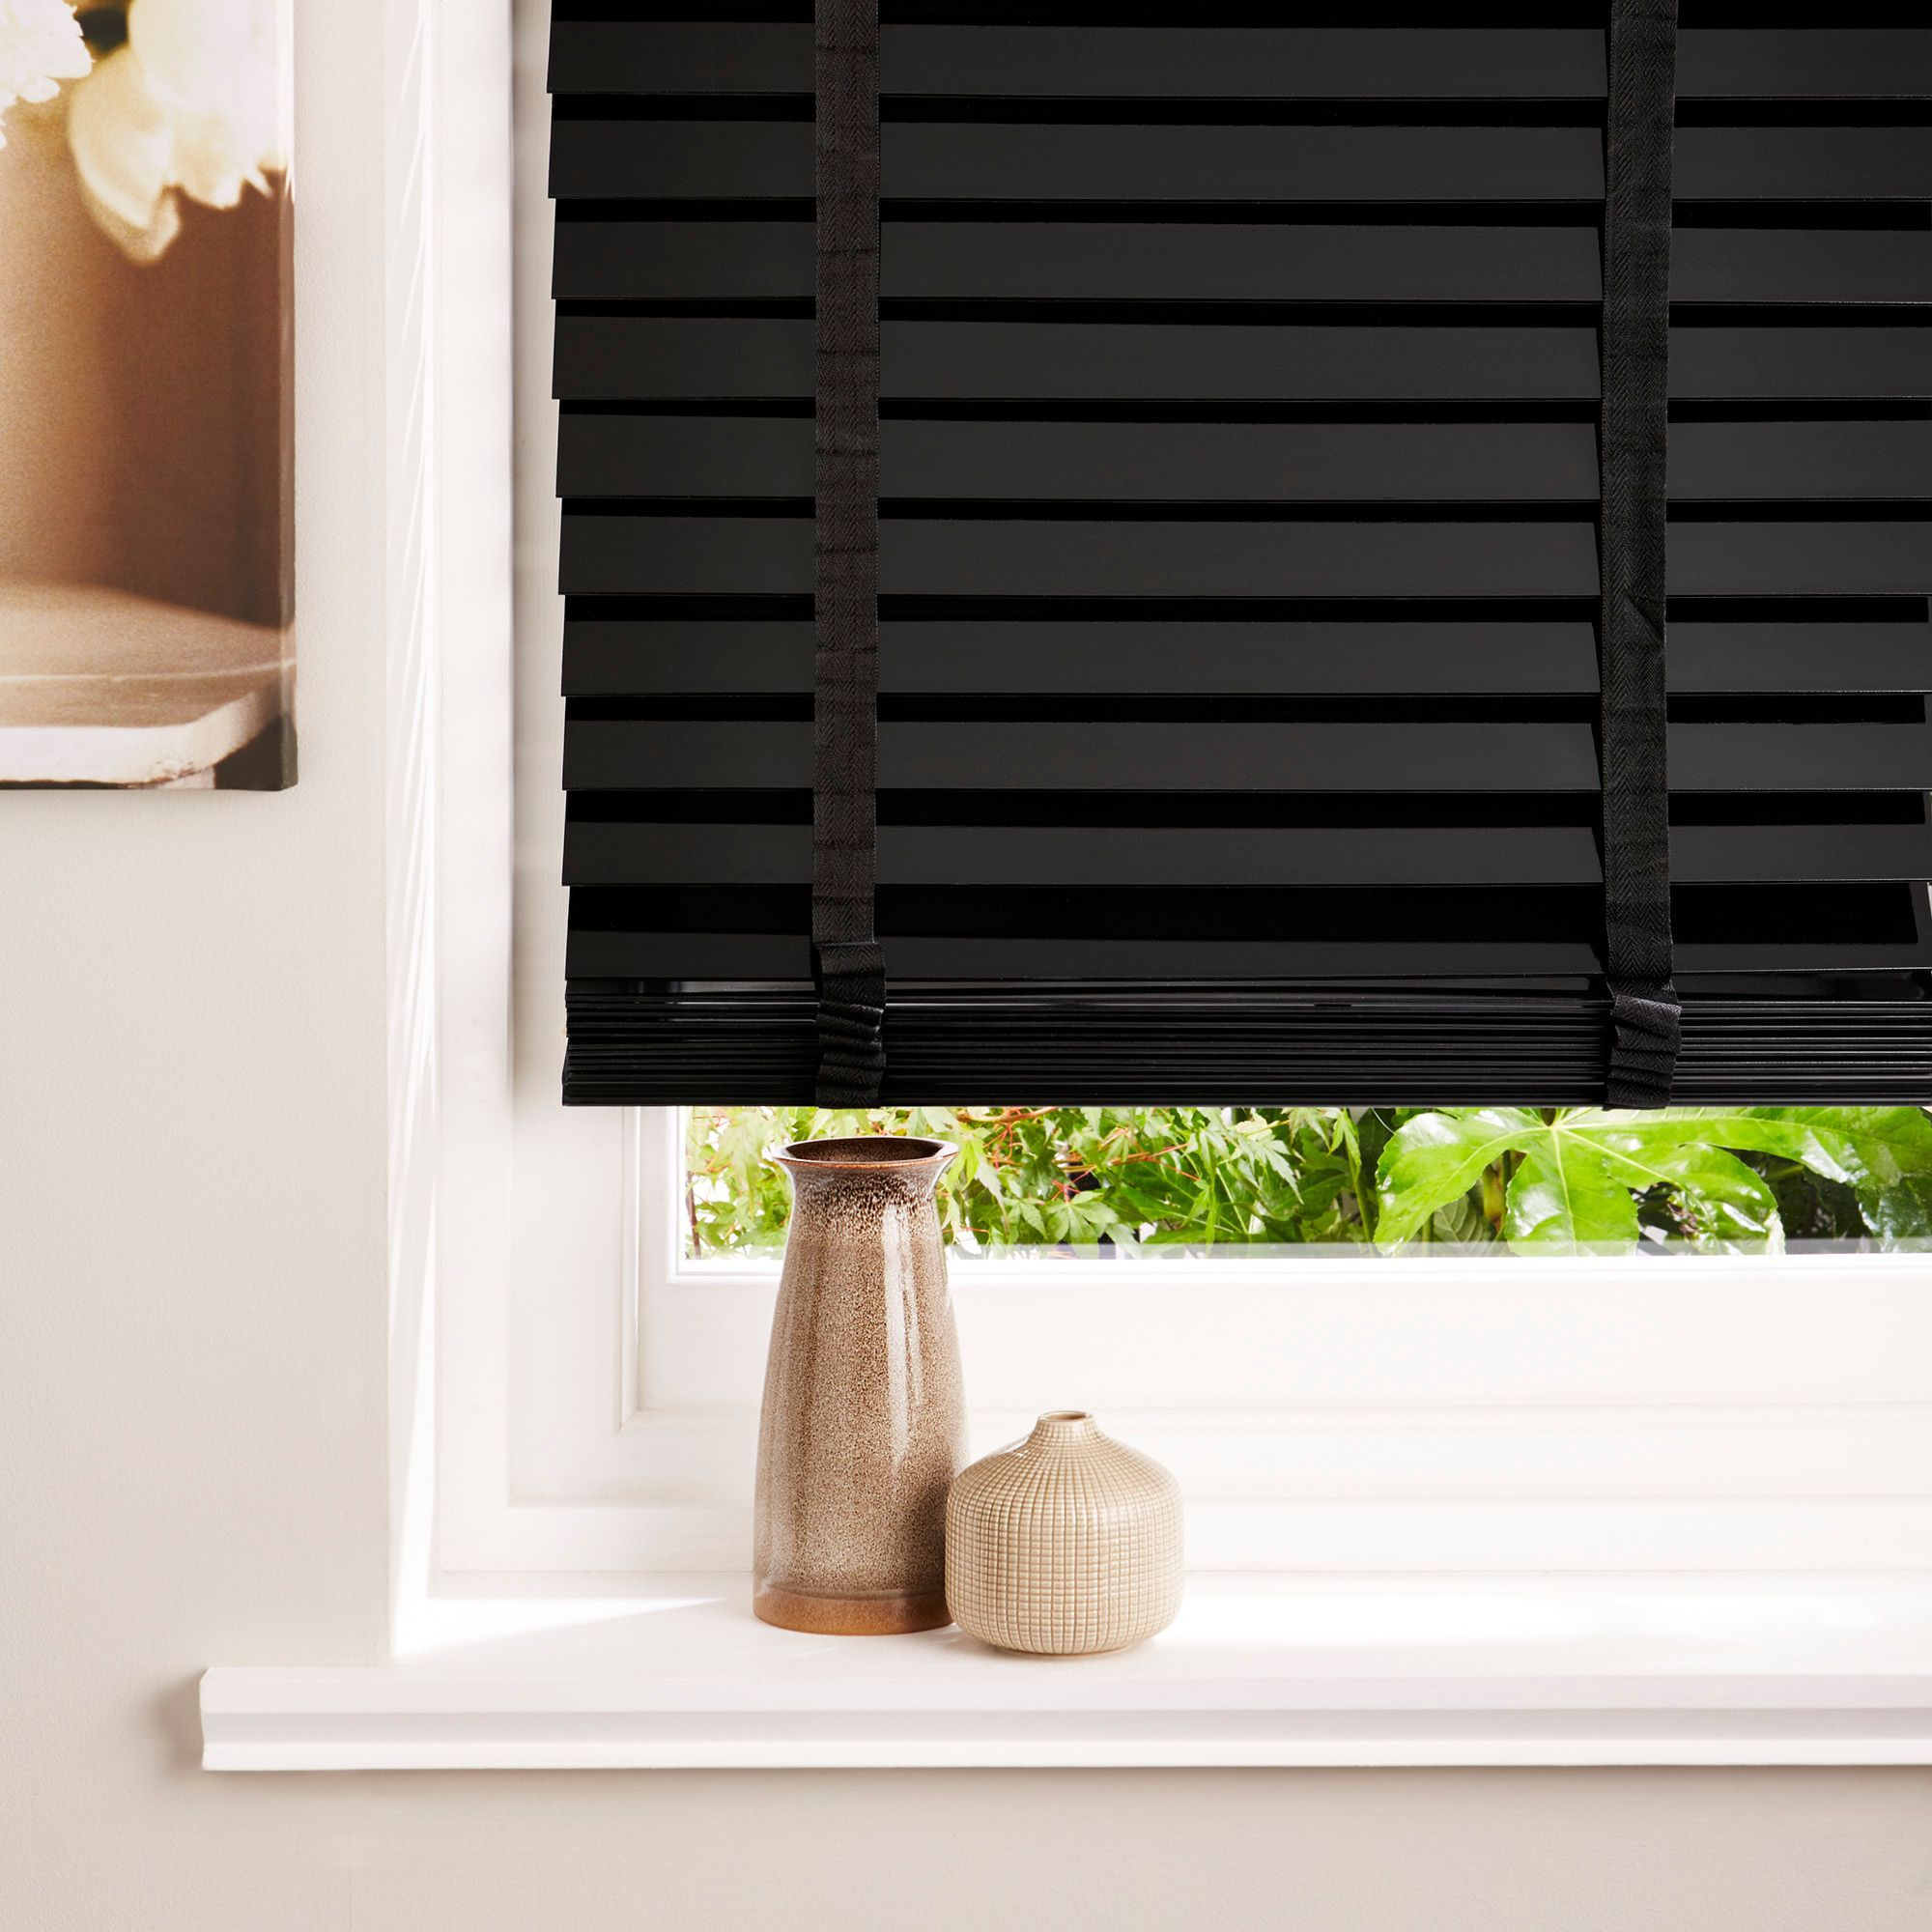 window solutions shade of best bathroom for in blinds